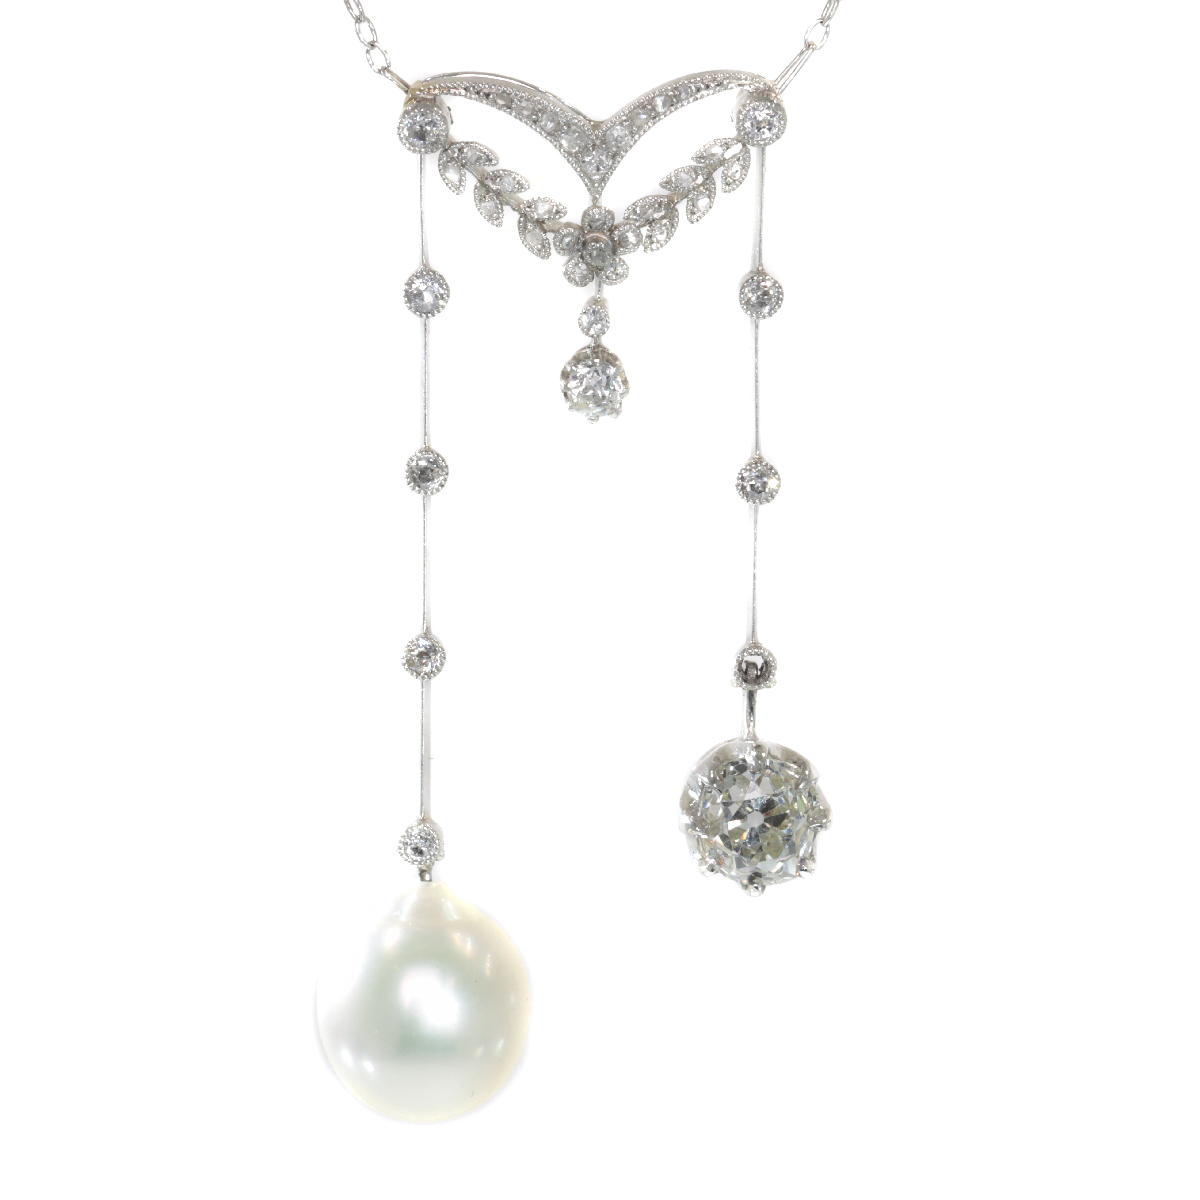 Elegant French Belle Epoque platinum diamond pearl necklace so-called négligé